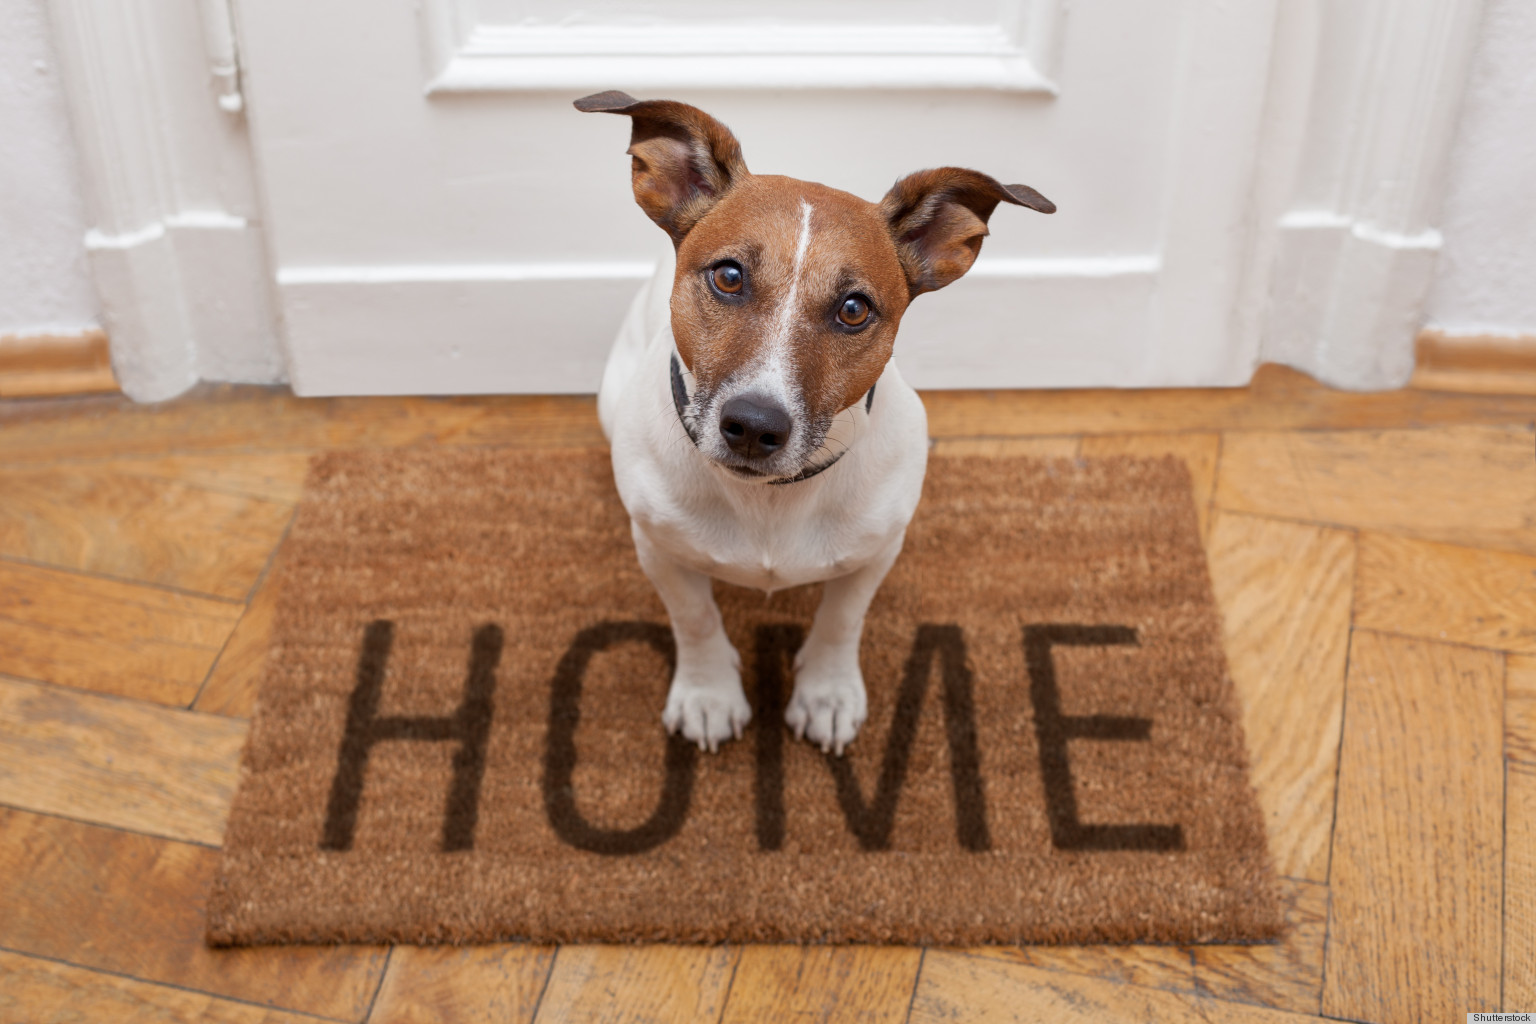 Pet Friendly Home Tips